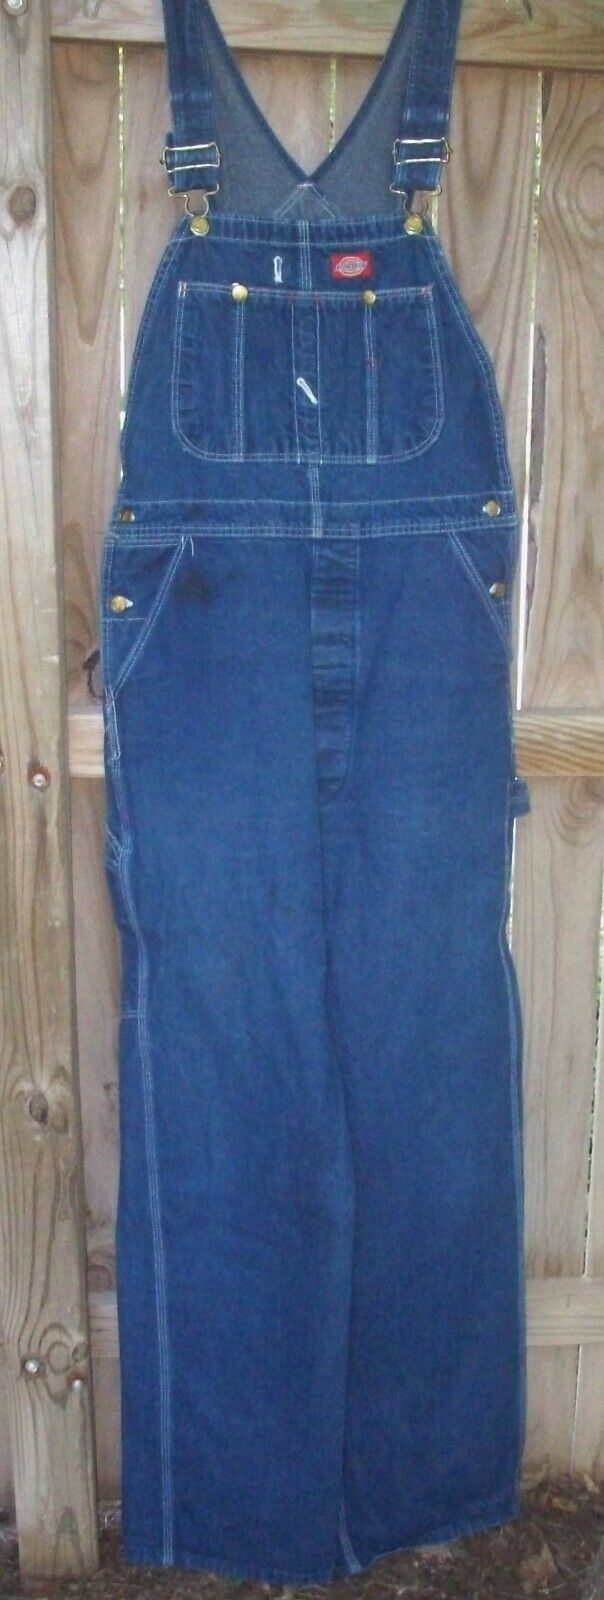 Vintage Dickies Overalls Size 34x34 - image 3